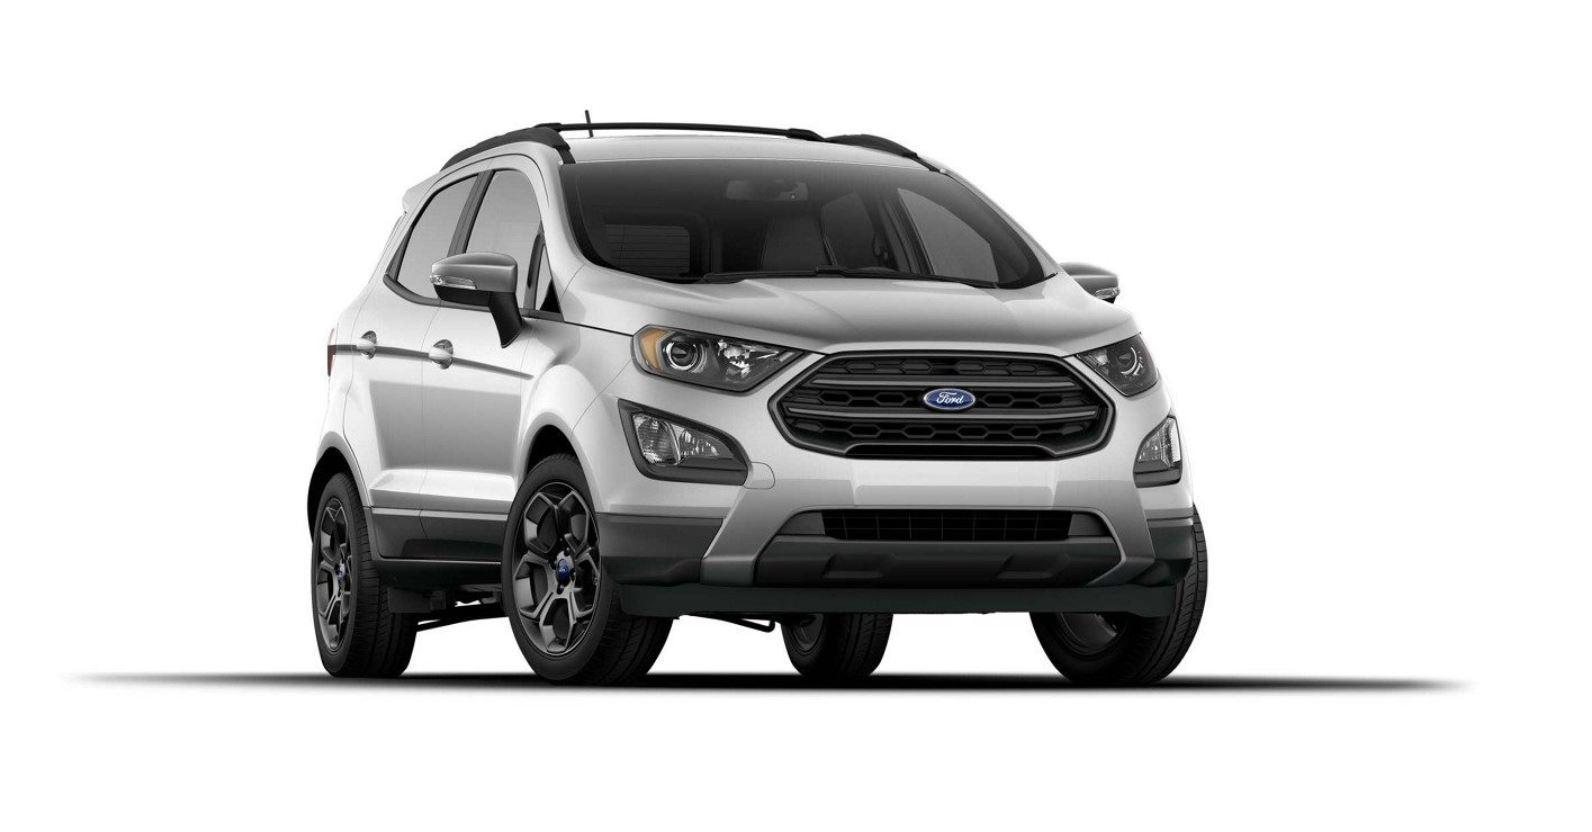 2019 Ford Ecosport at Lincoln Heights Ford Sales Ottawa